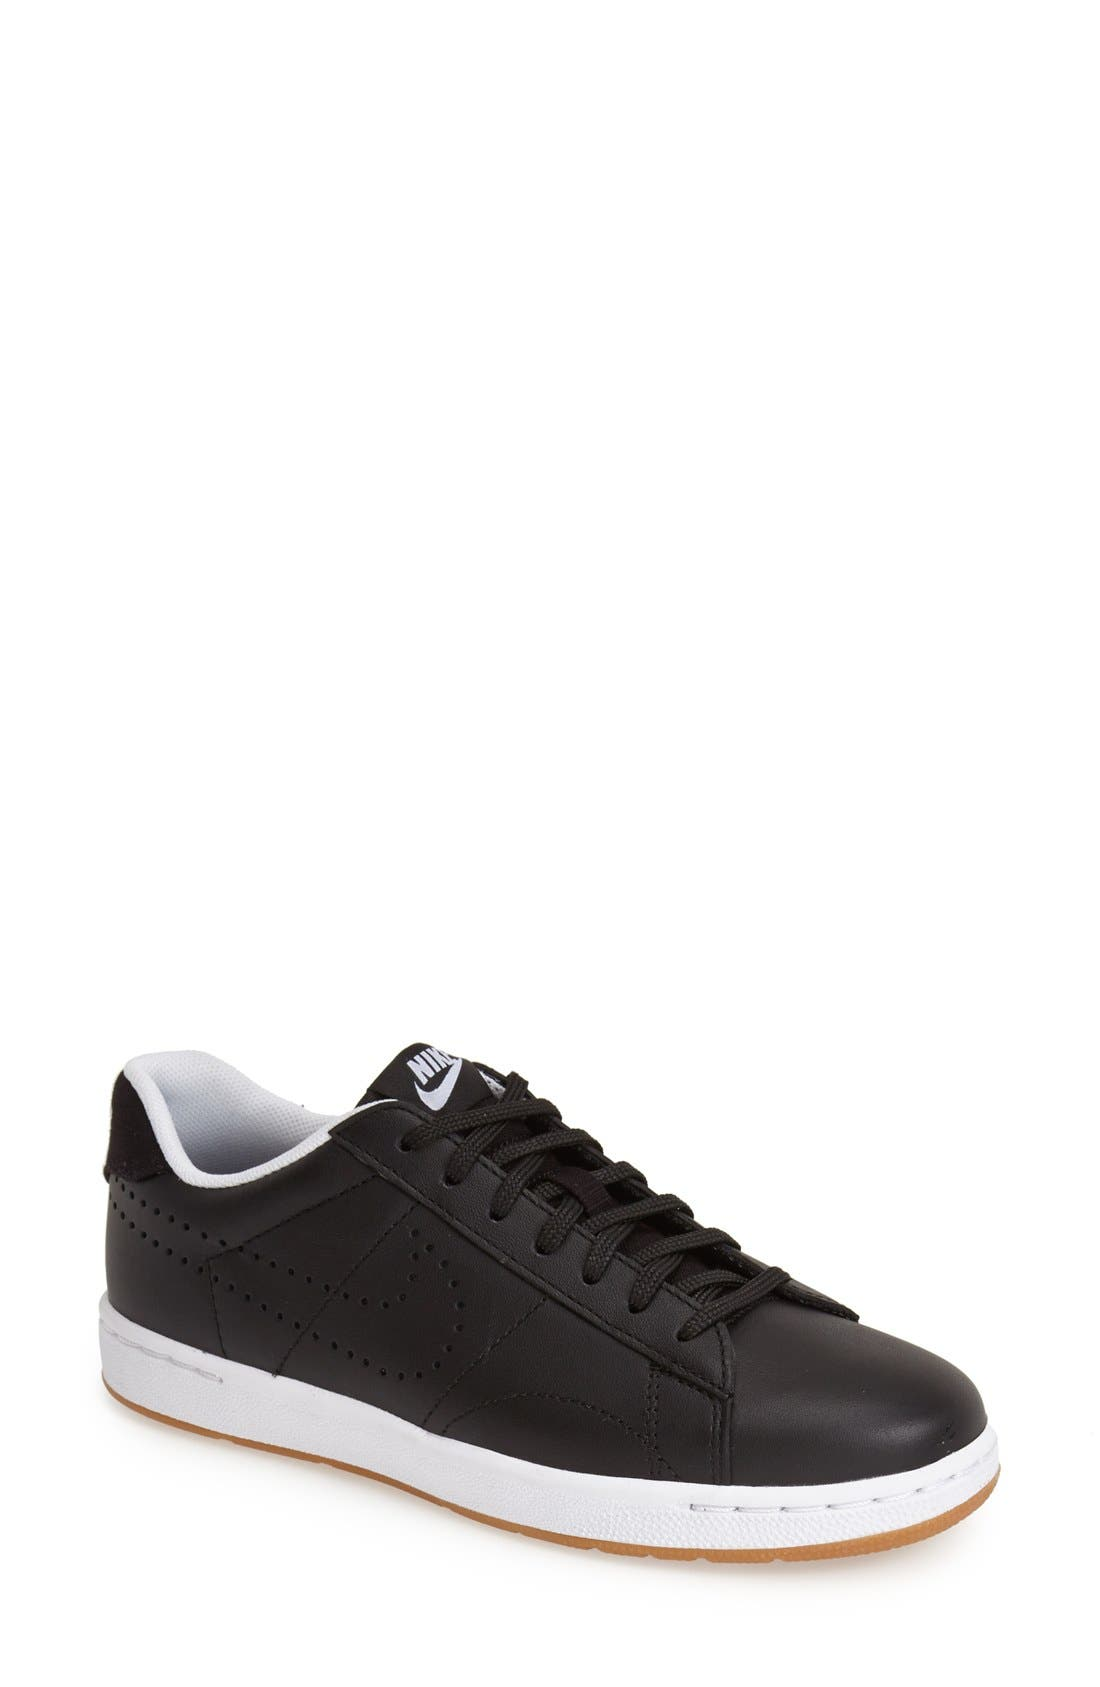 Alternate Image 1 Selected - Nike 'Classic Ultra' Leather Sneaker (Women)